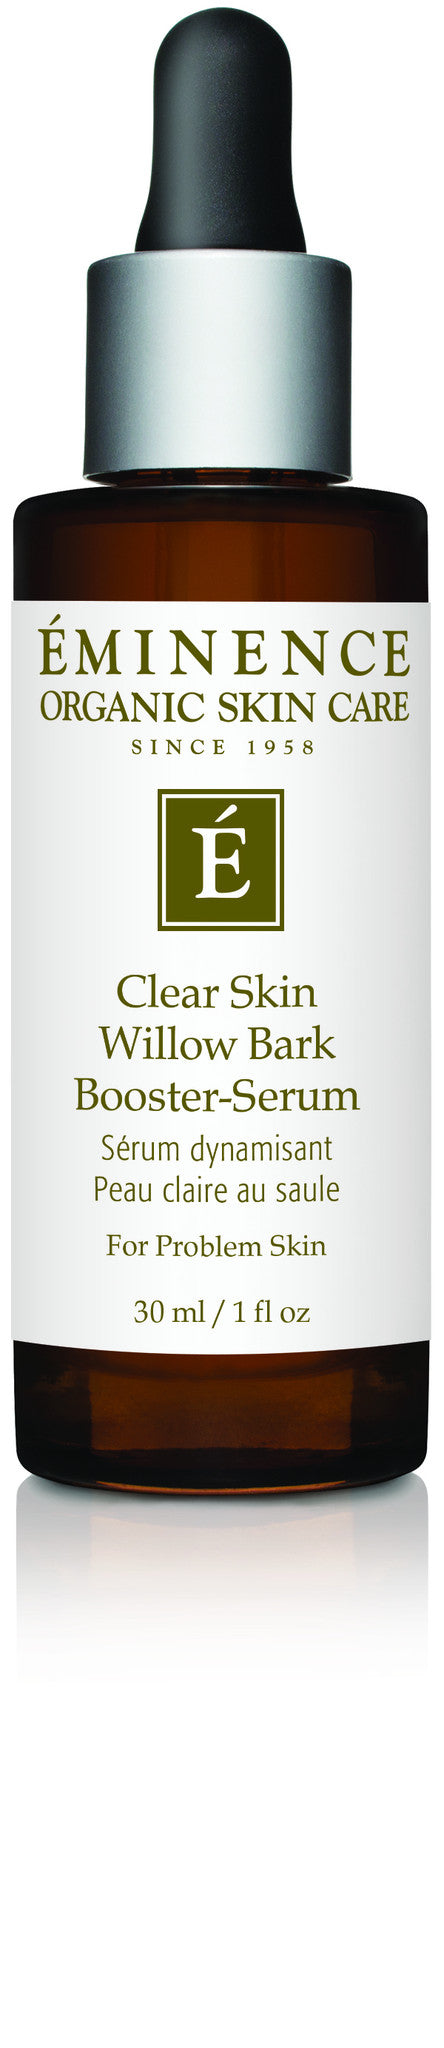 Clear Skin Willow Bark Booster-Serum - Organic Skin Therapy